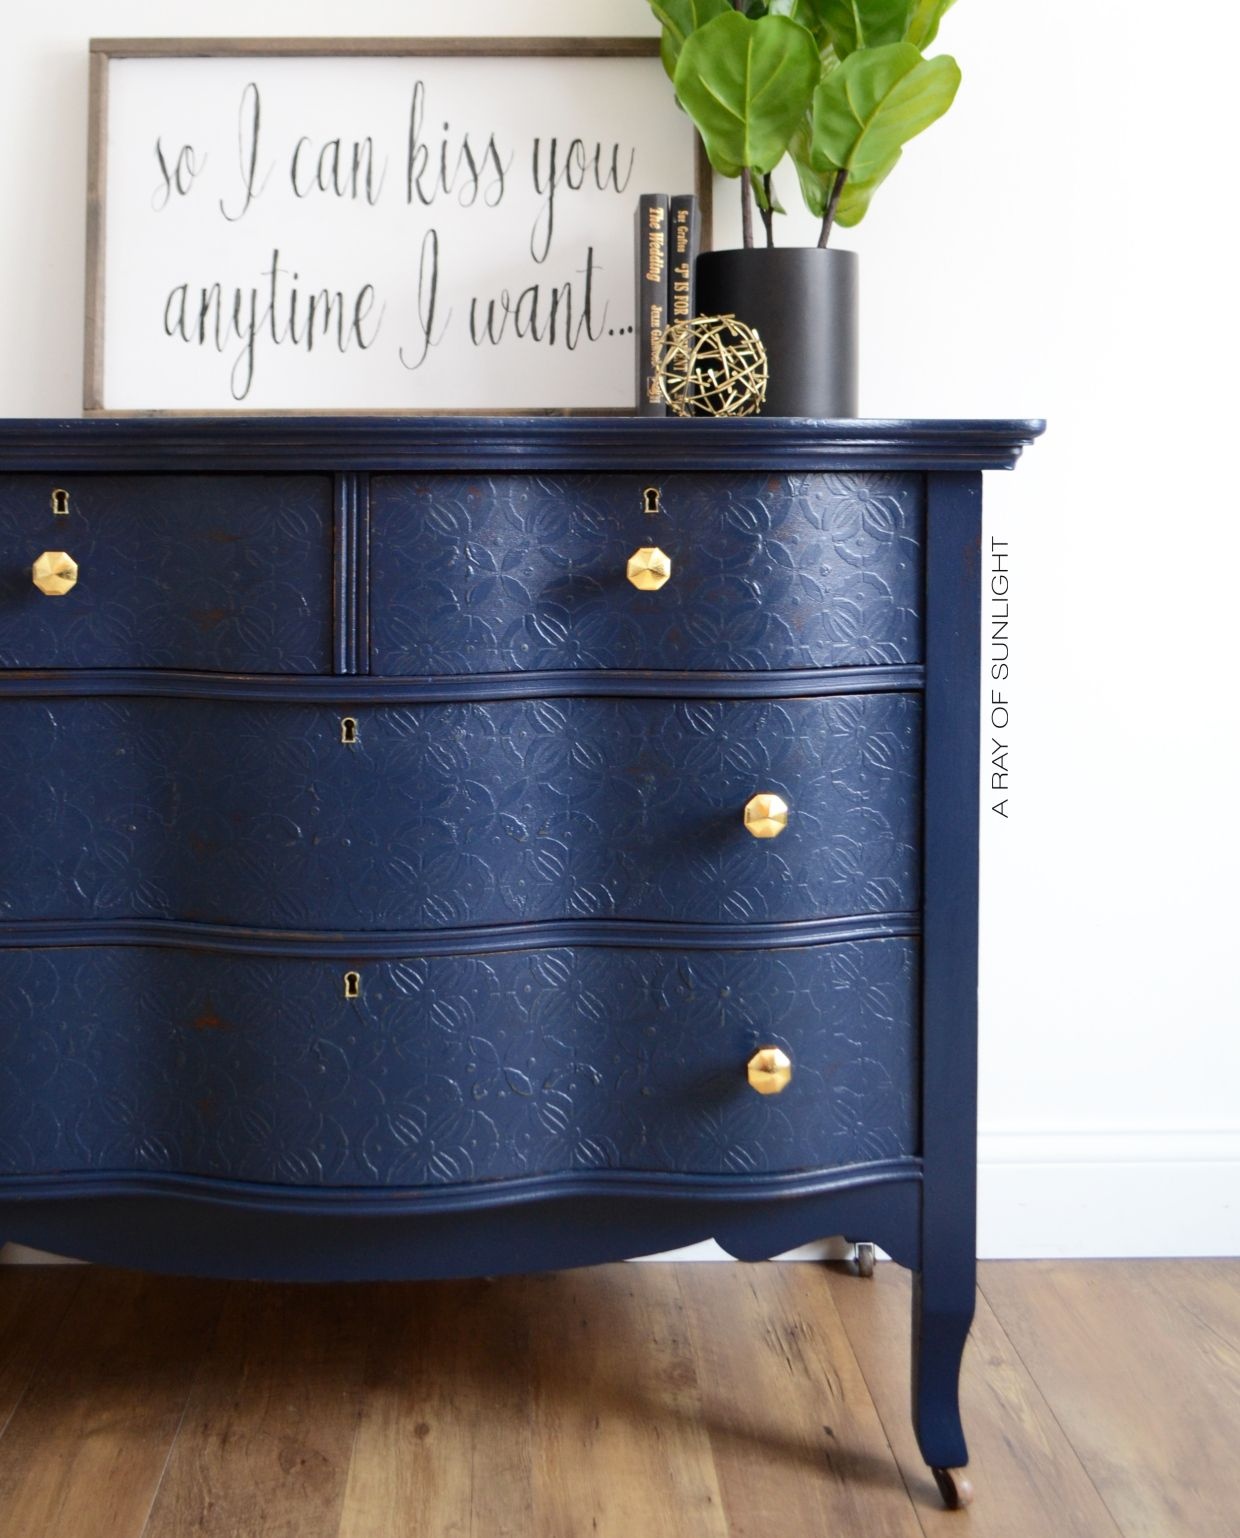 The Peacoat Dresser with Textured Drawers Painting